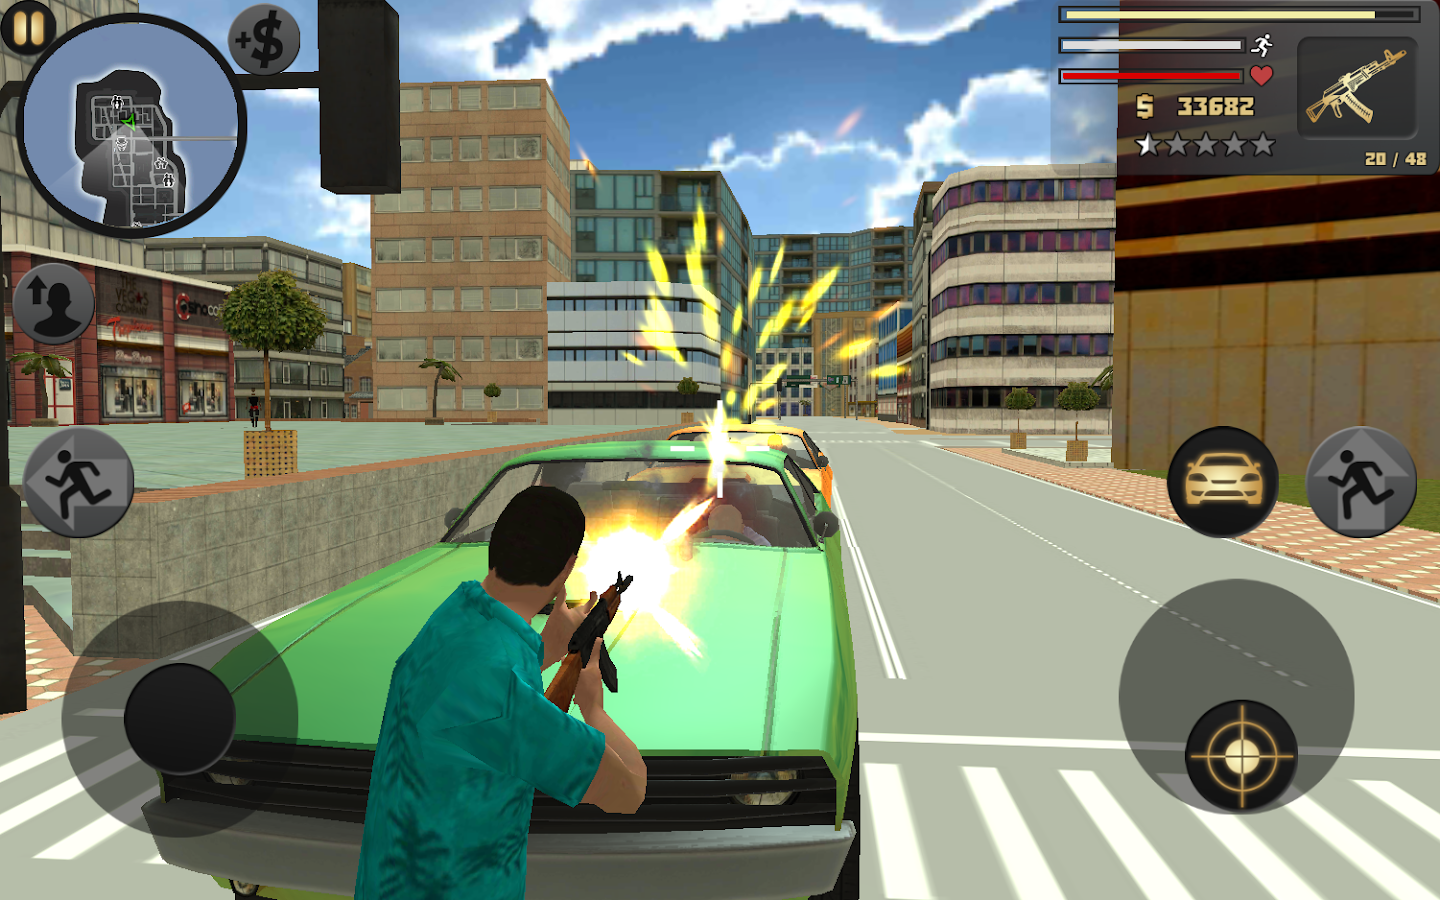 Vegas Crime Simulator Screenshot 1